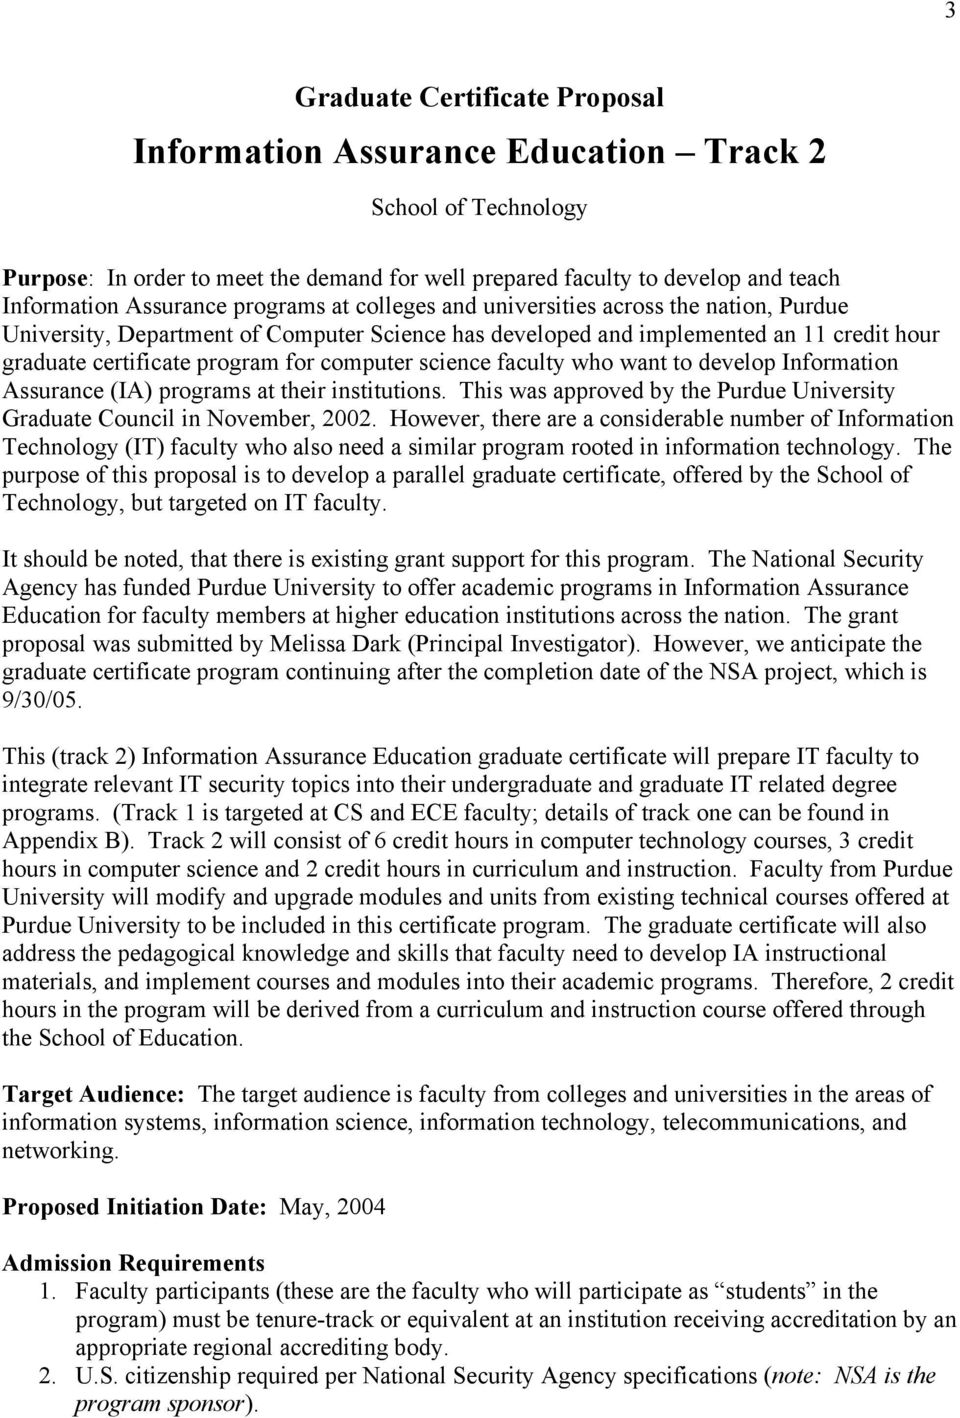 science faculty who want to develop Information Assurance (IA) programs at their institutions. This was approved by the Purdue University Graduate Council in November, 2002.